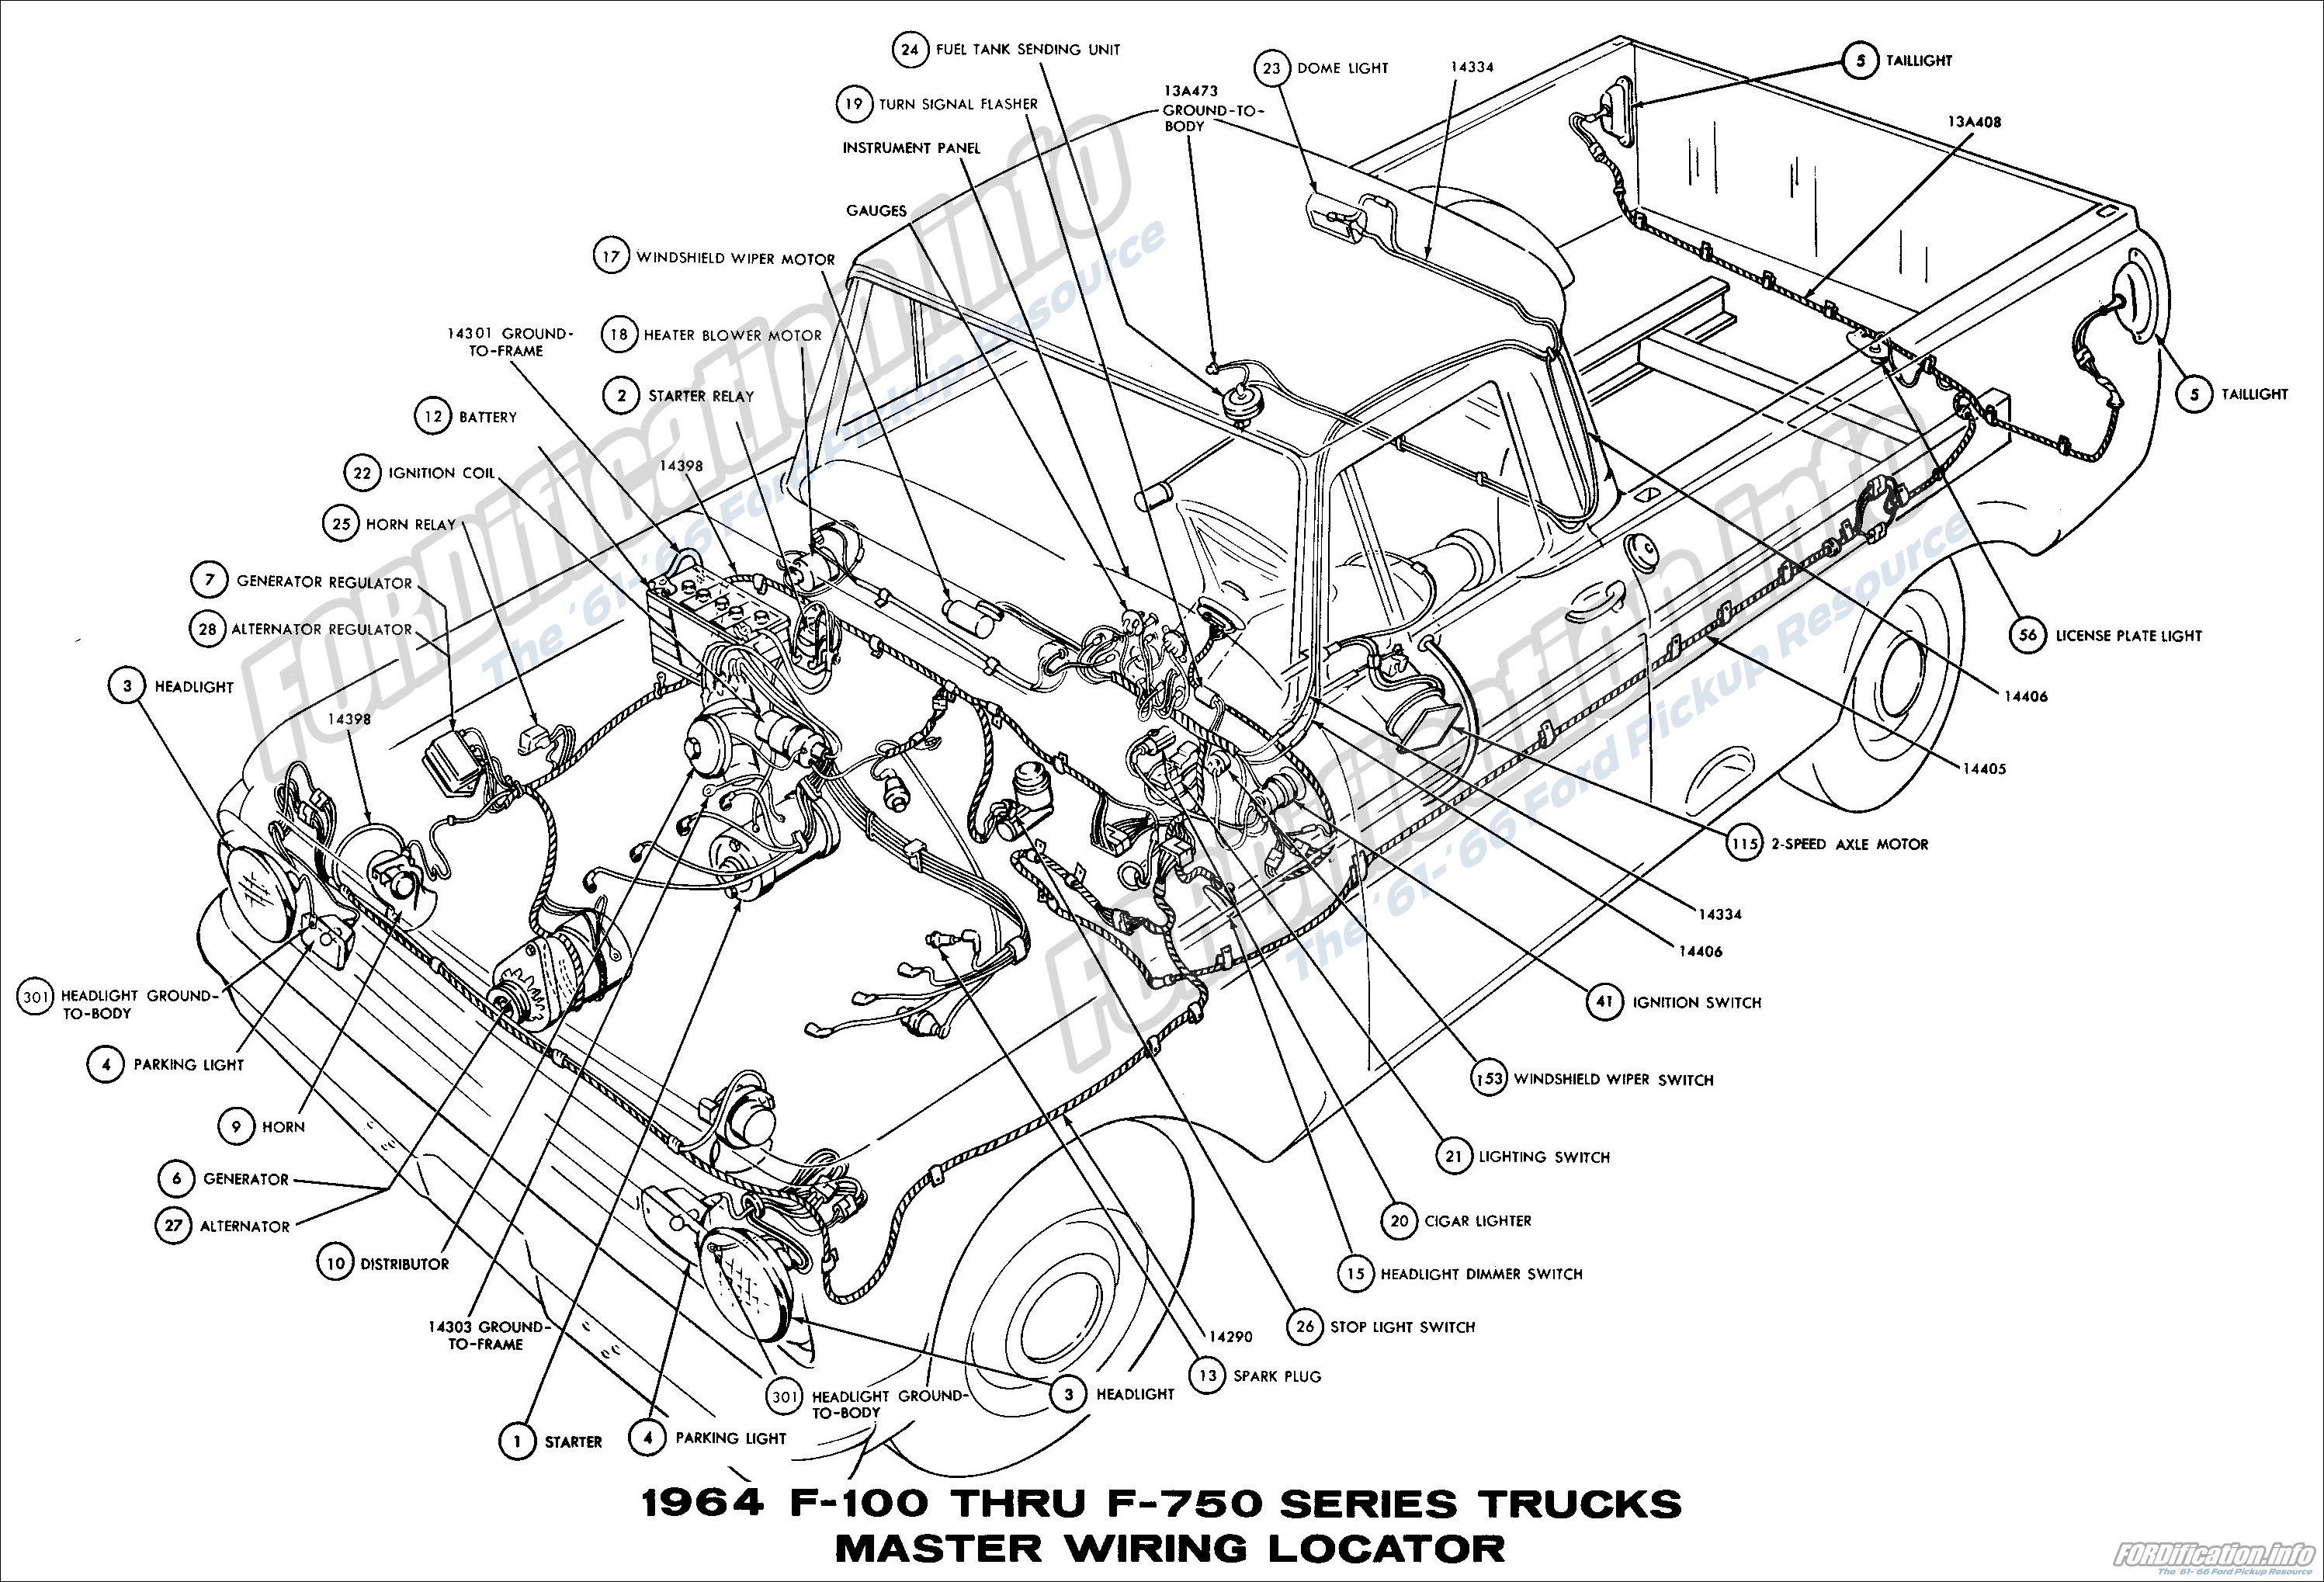 Ford Truck Diagrams Simple Wiring Diagram Parts 1964 Fordification Info The 61 66